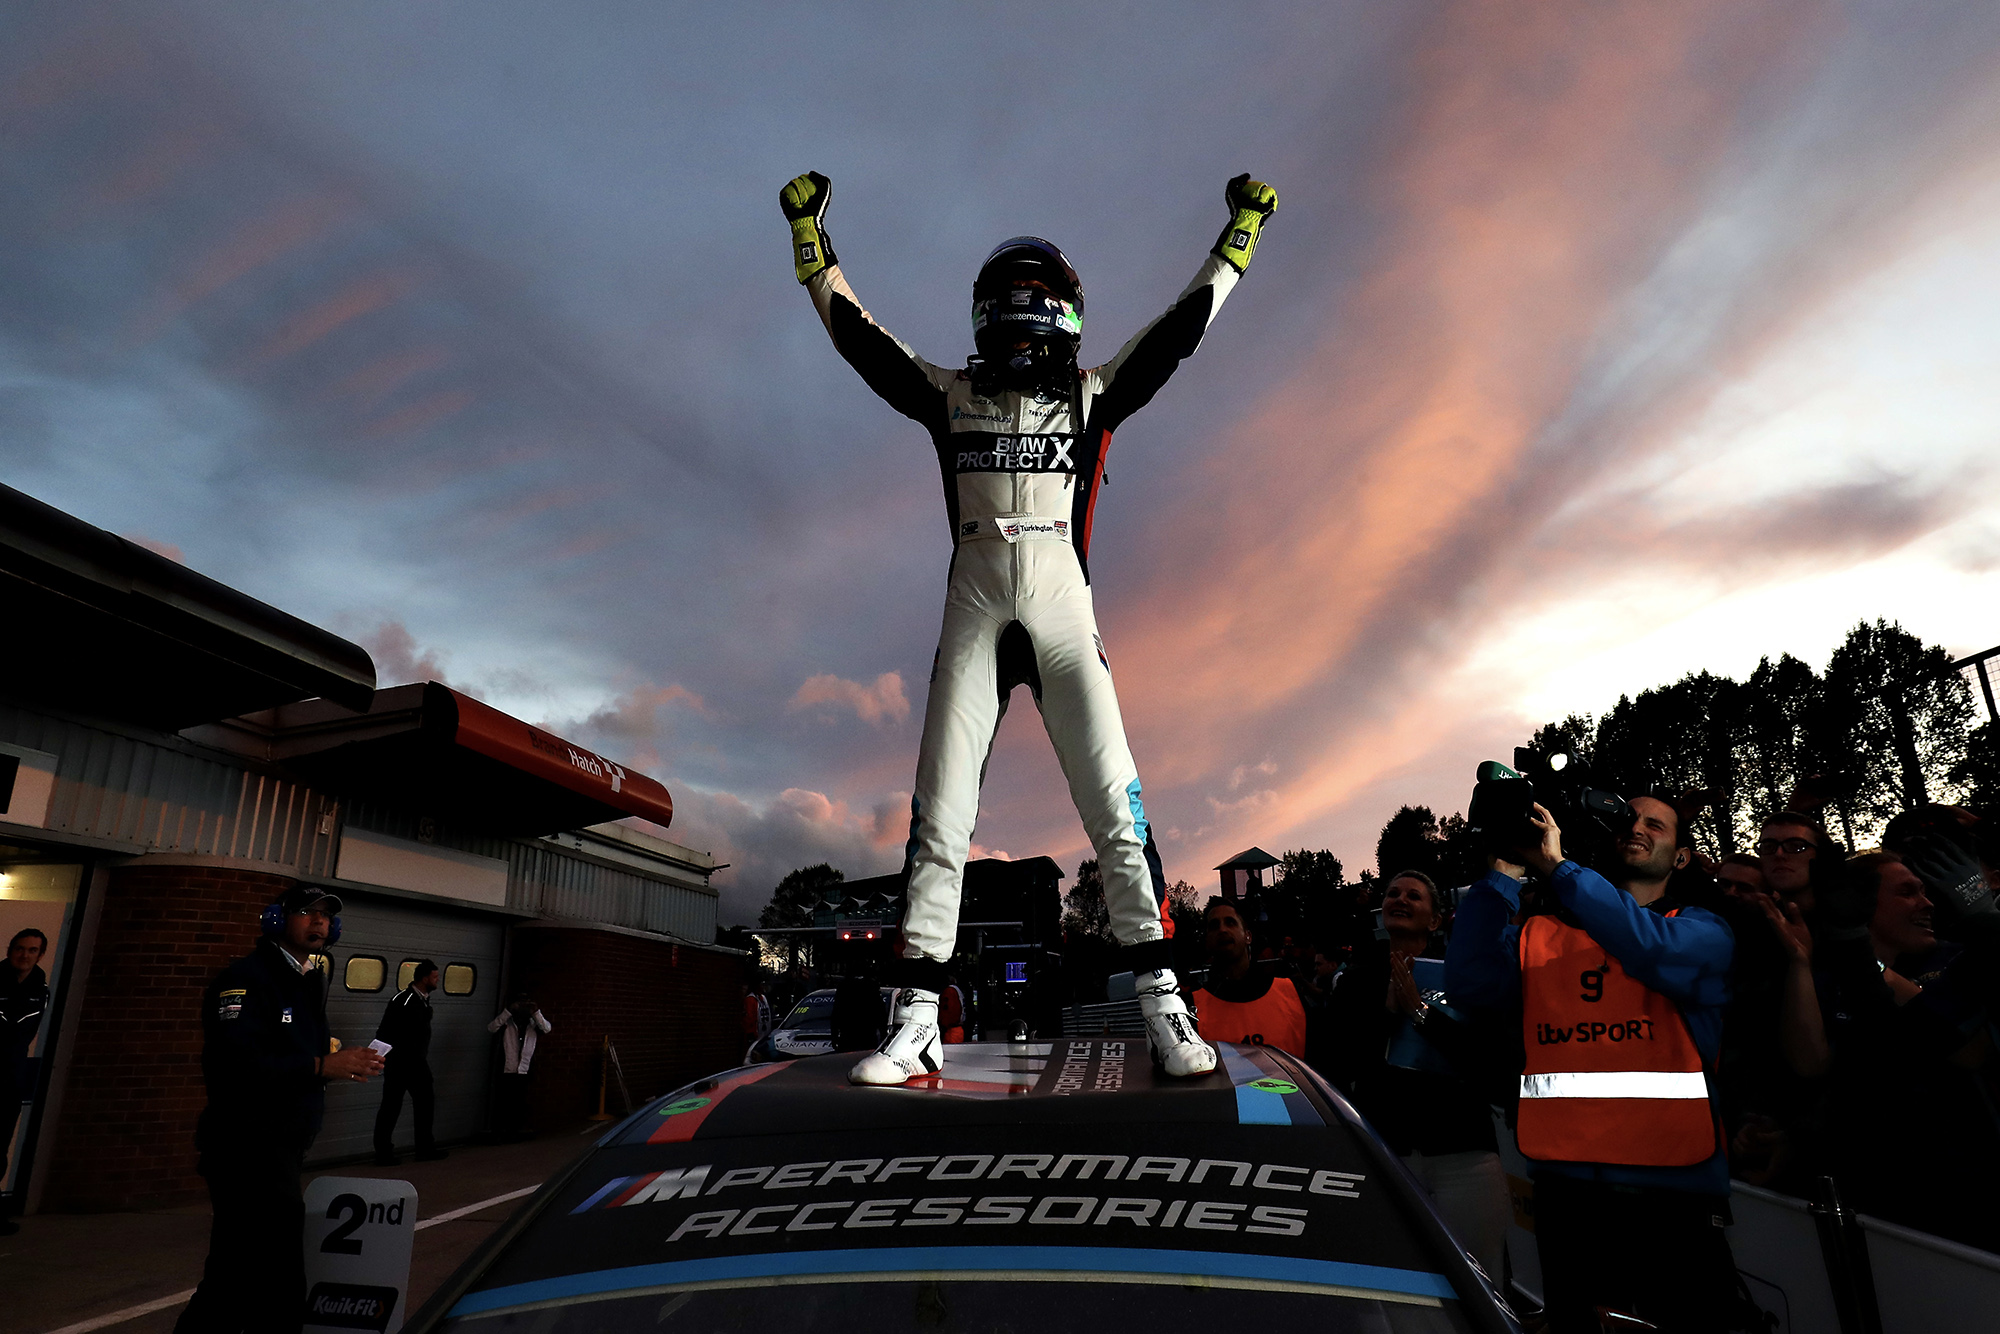 Colin Turkington stands on his car as he celebrates winning the 2019 BTCC championship at Brands Hatch